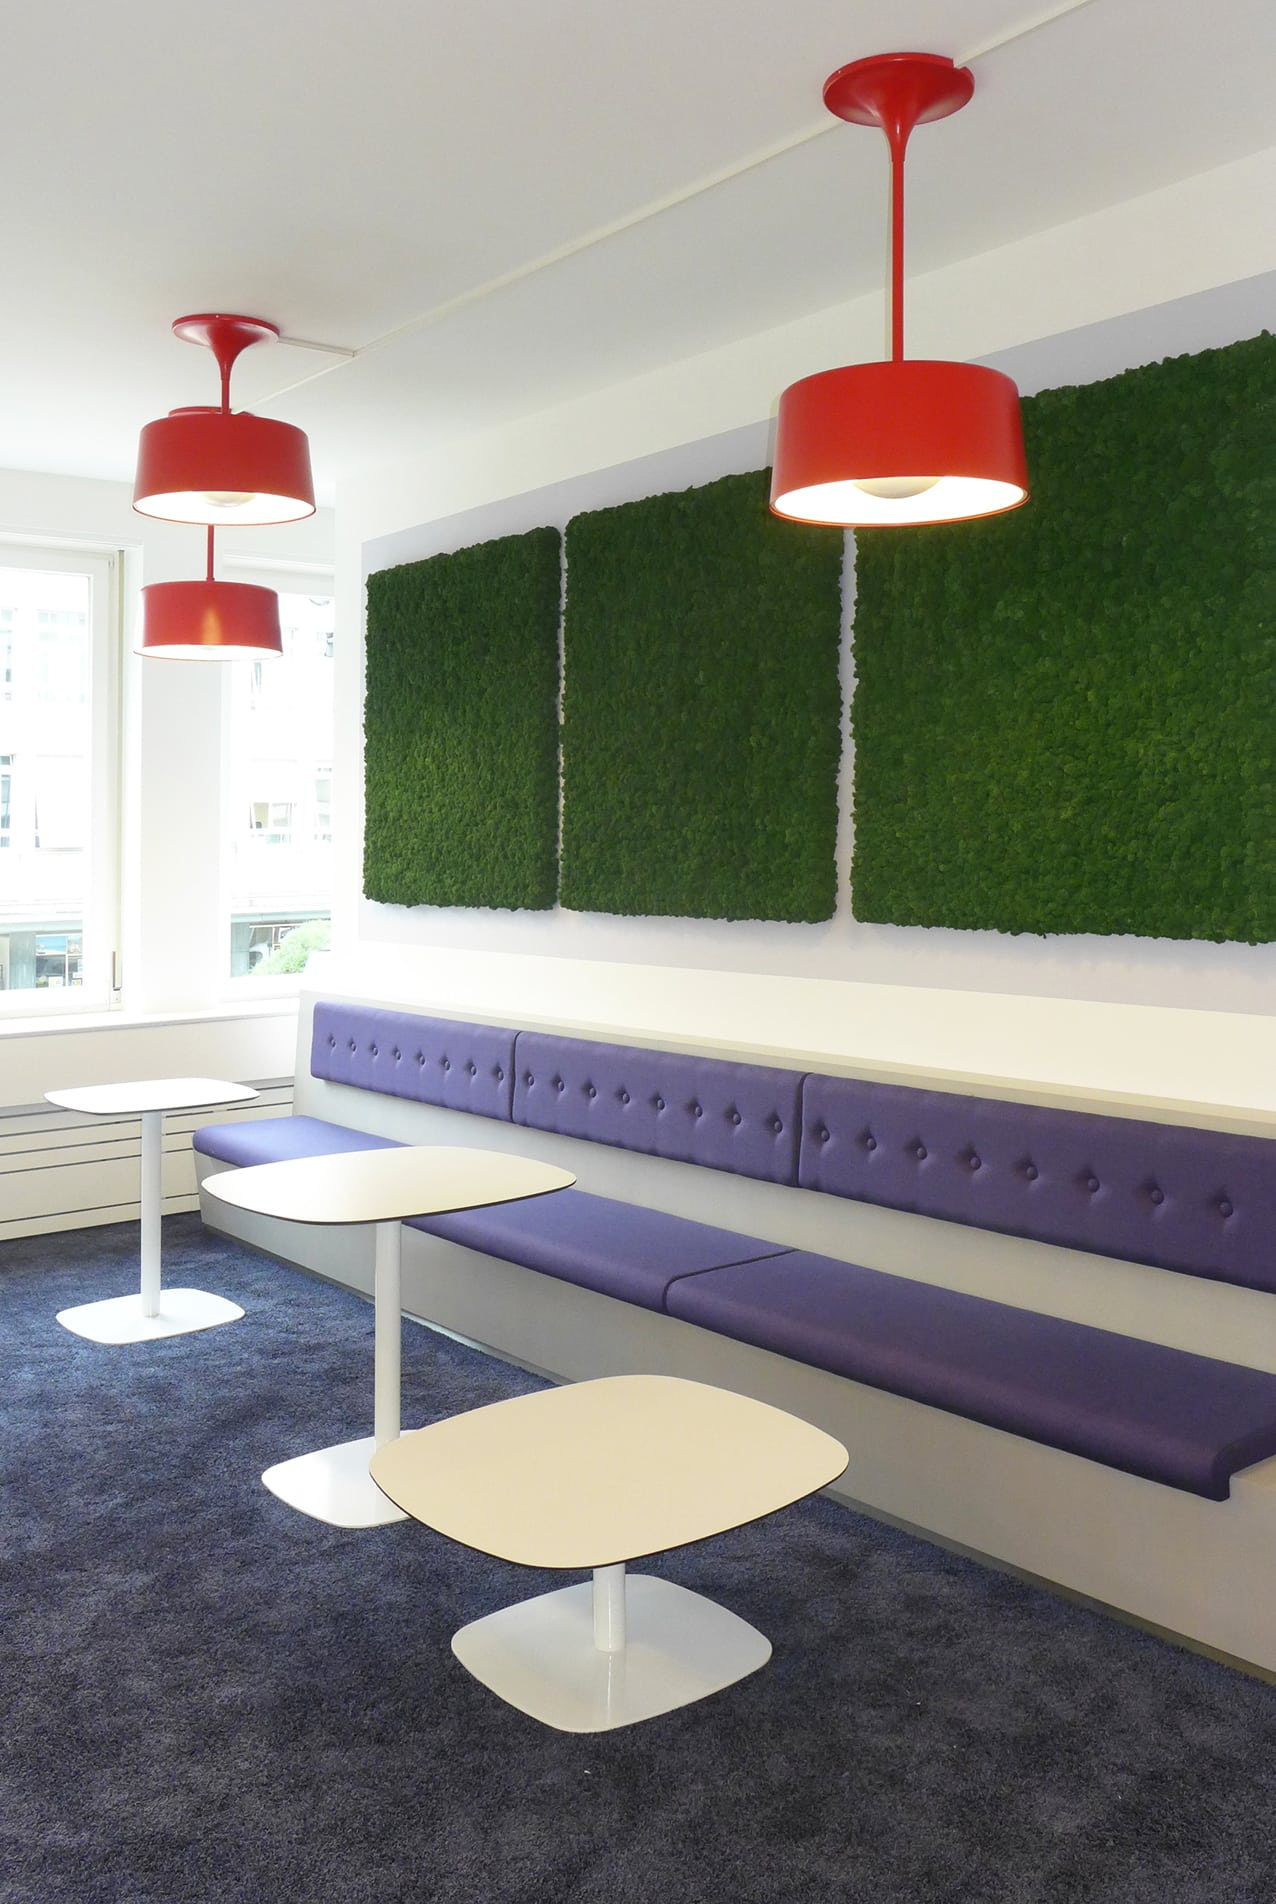 Booking.com, Zurich - seating area